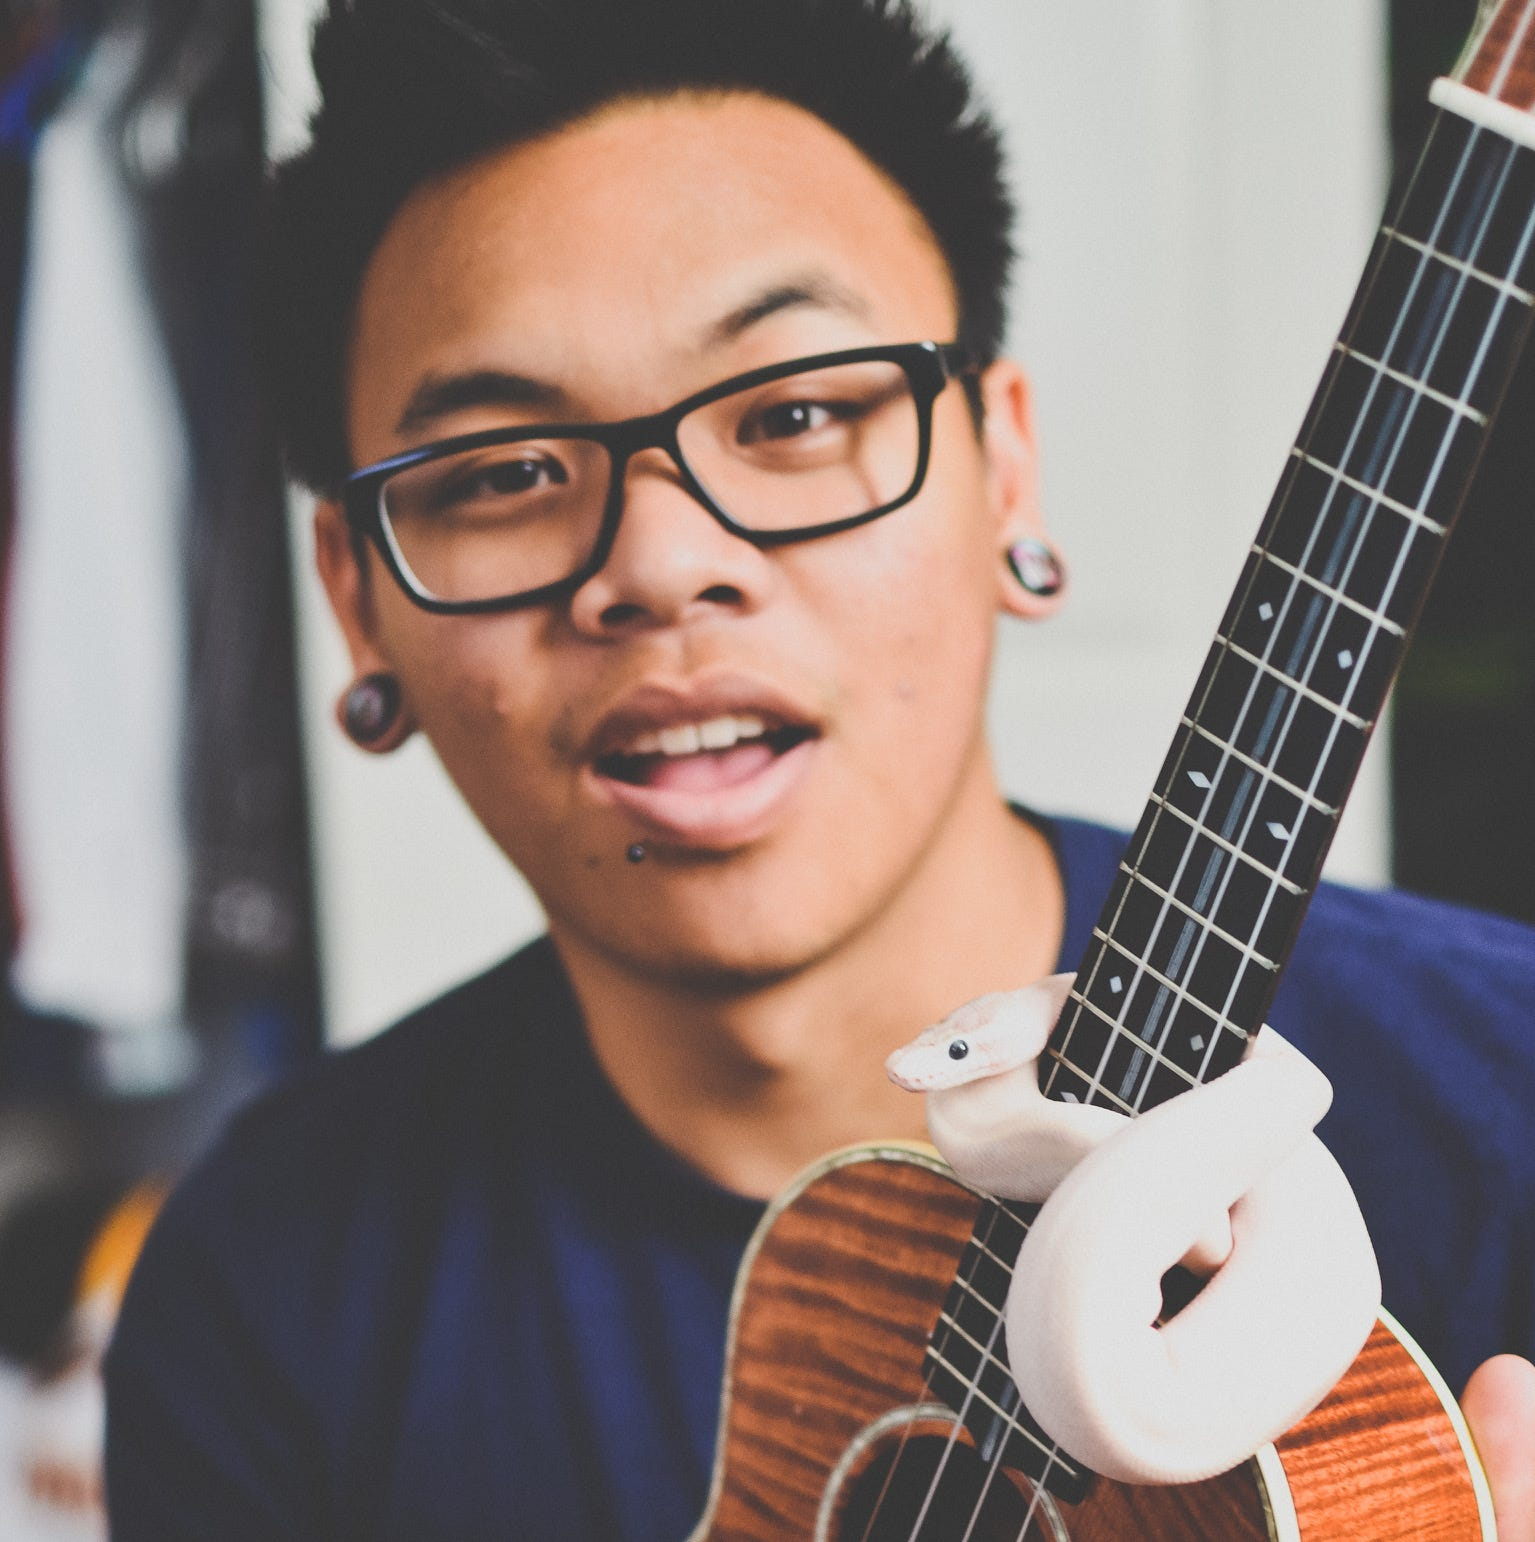 YouTuber AJ Rafael to play free concert as part of Tumon Bay Music Festival lineup